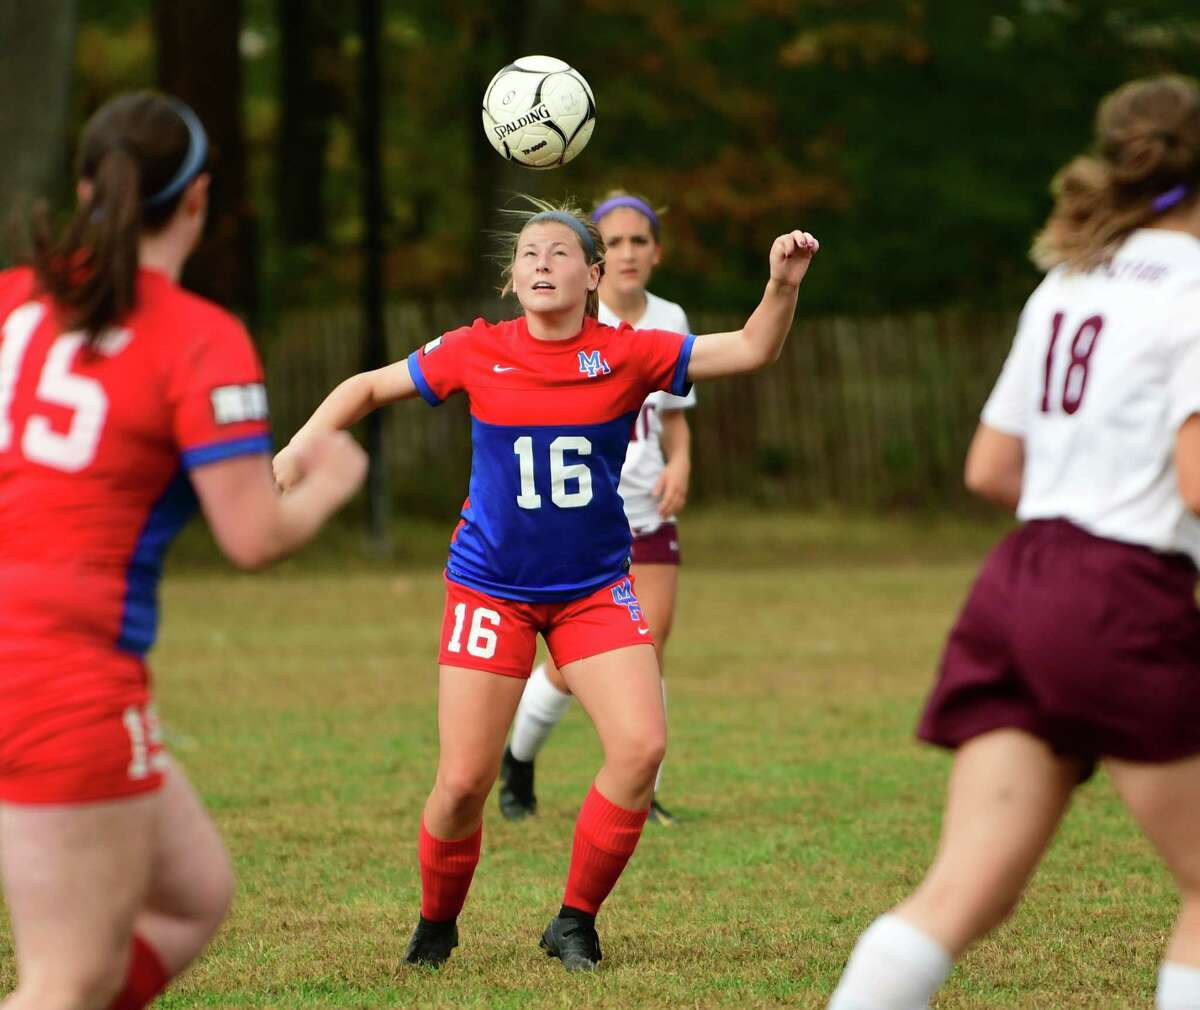 Maple Hill's Alayna Fletcher heads the ball during a soccer game with Greenville on Wednesday Oct. 9, 2019 in Schodack, N.Y. (Lori Van Buren/Times Union)